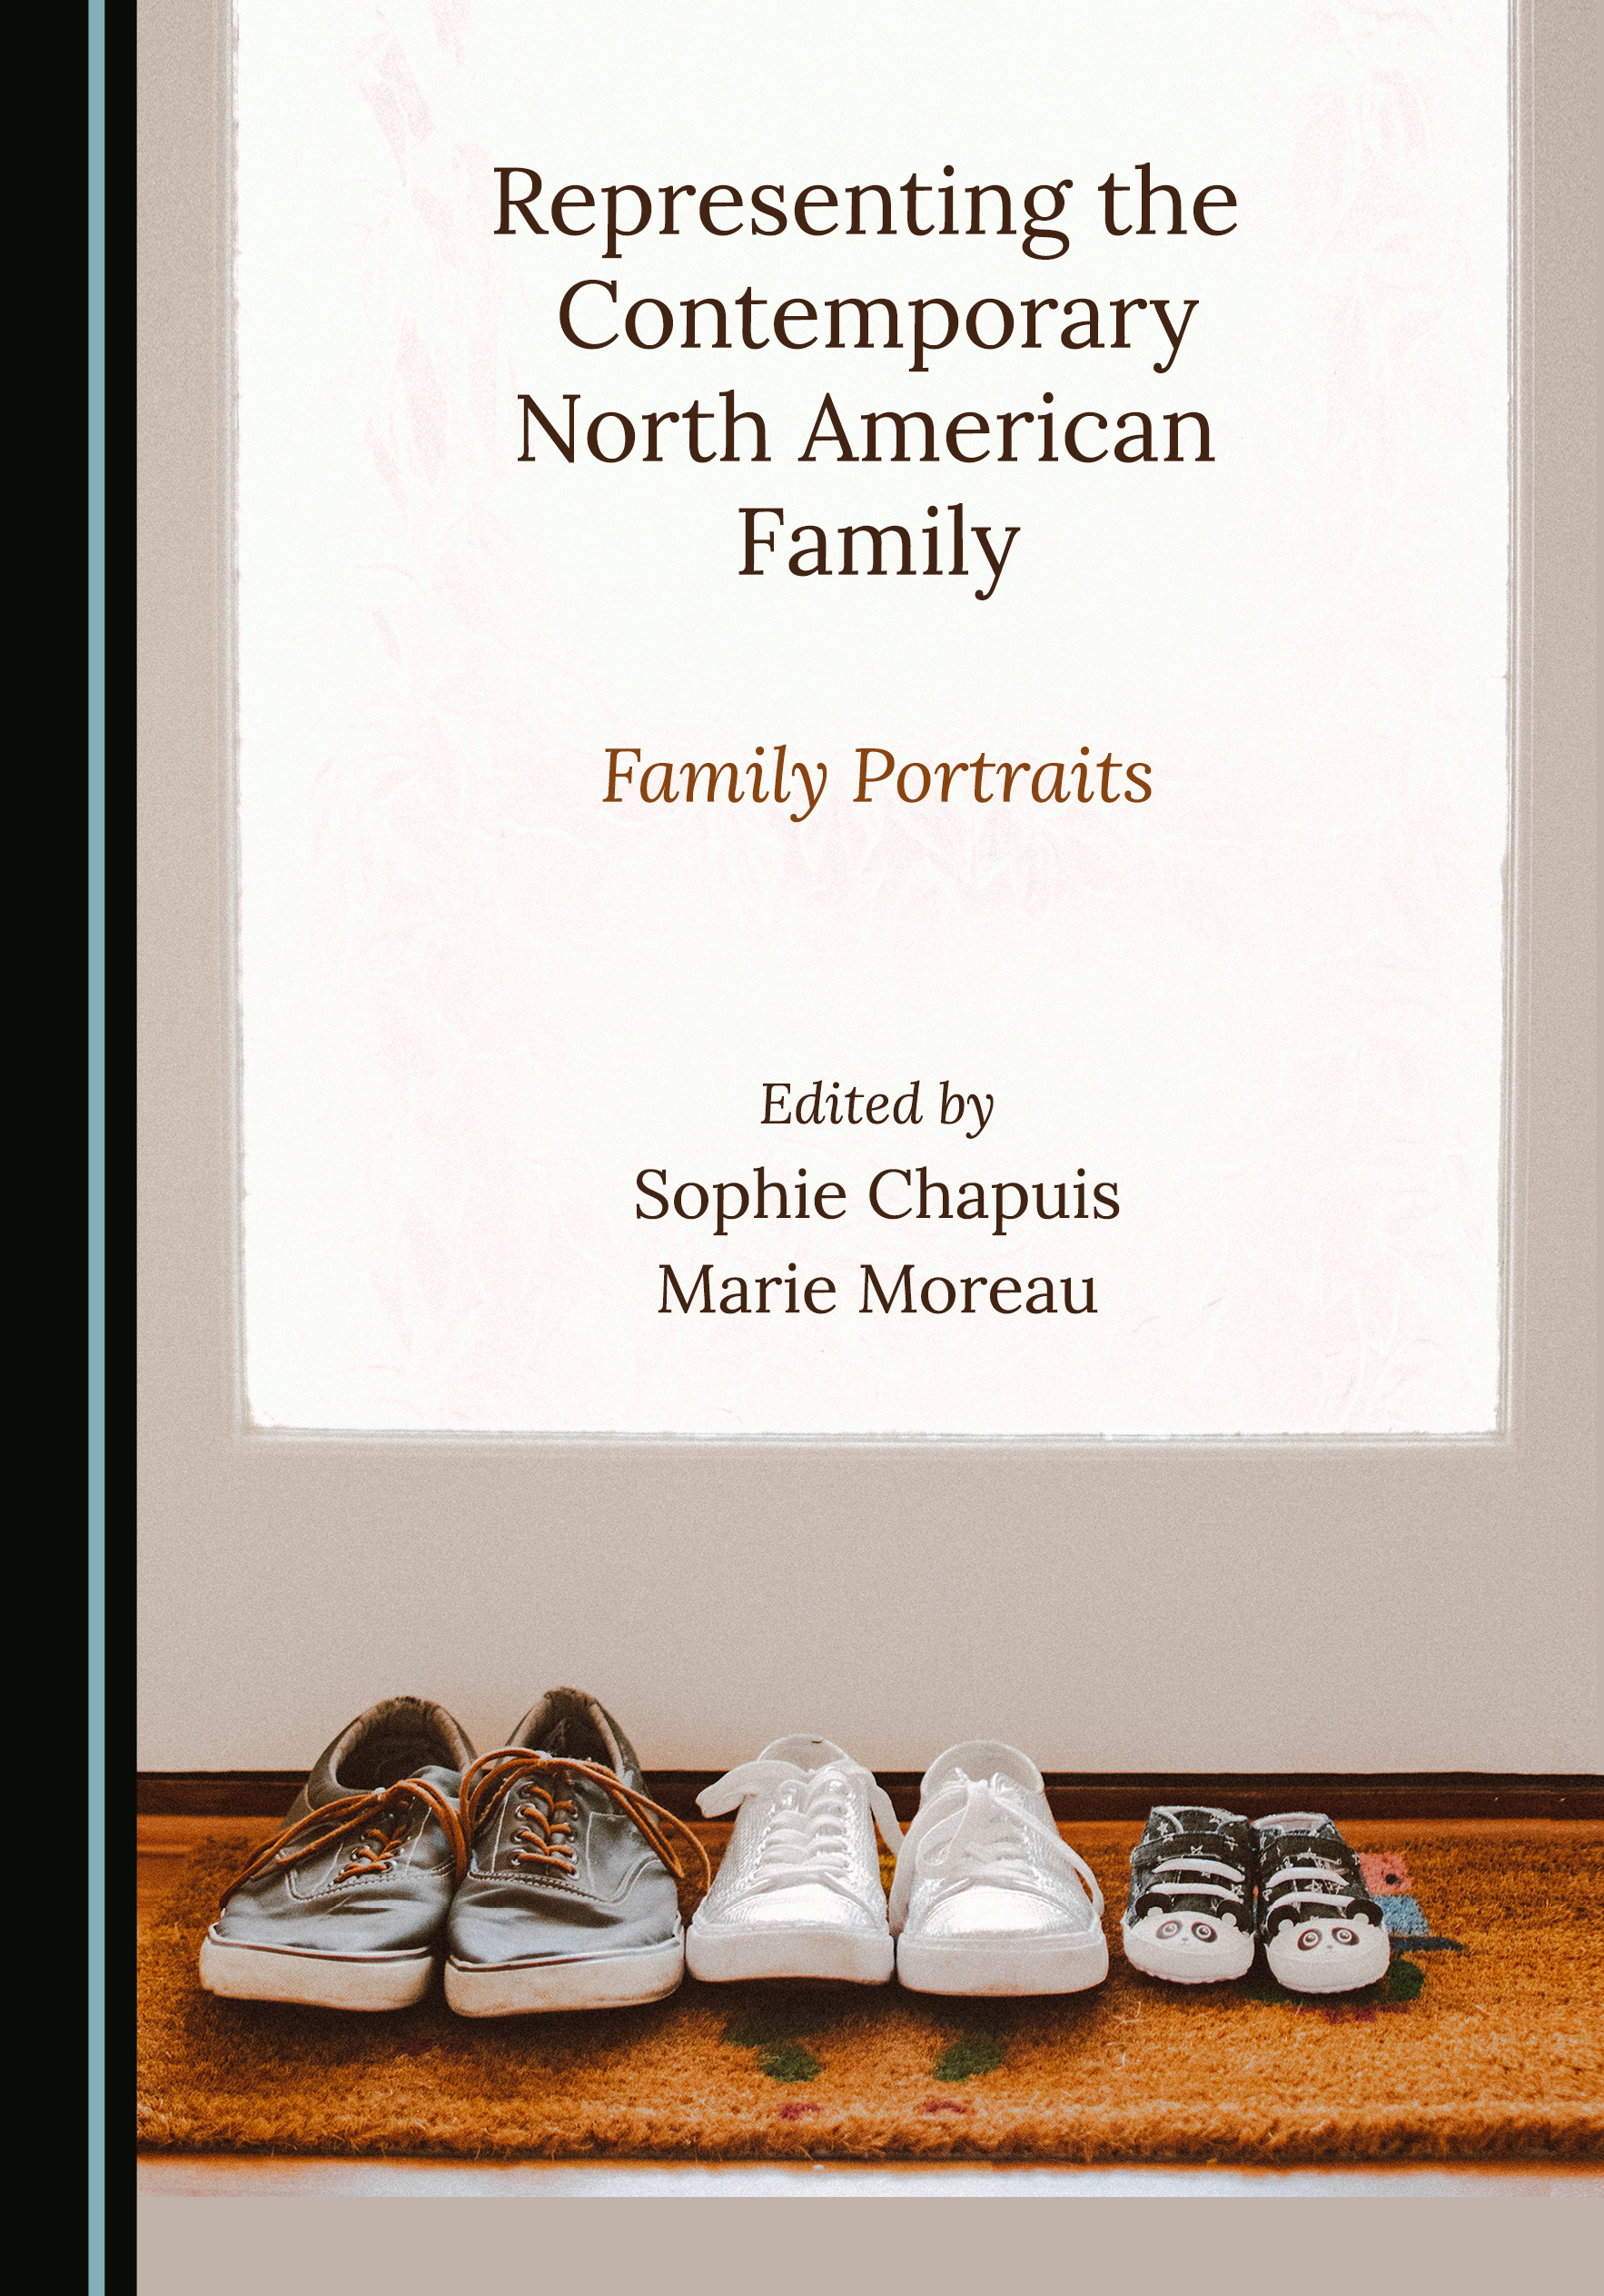 Representing the Contemporary North American Family: Family Portraits